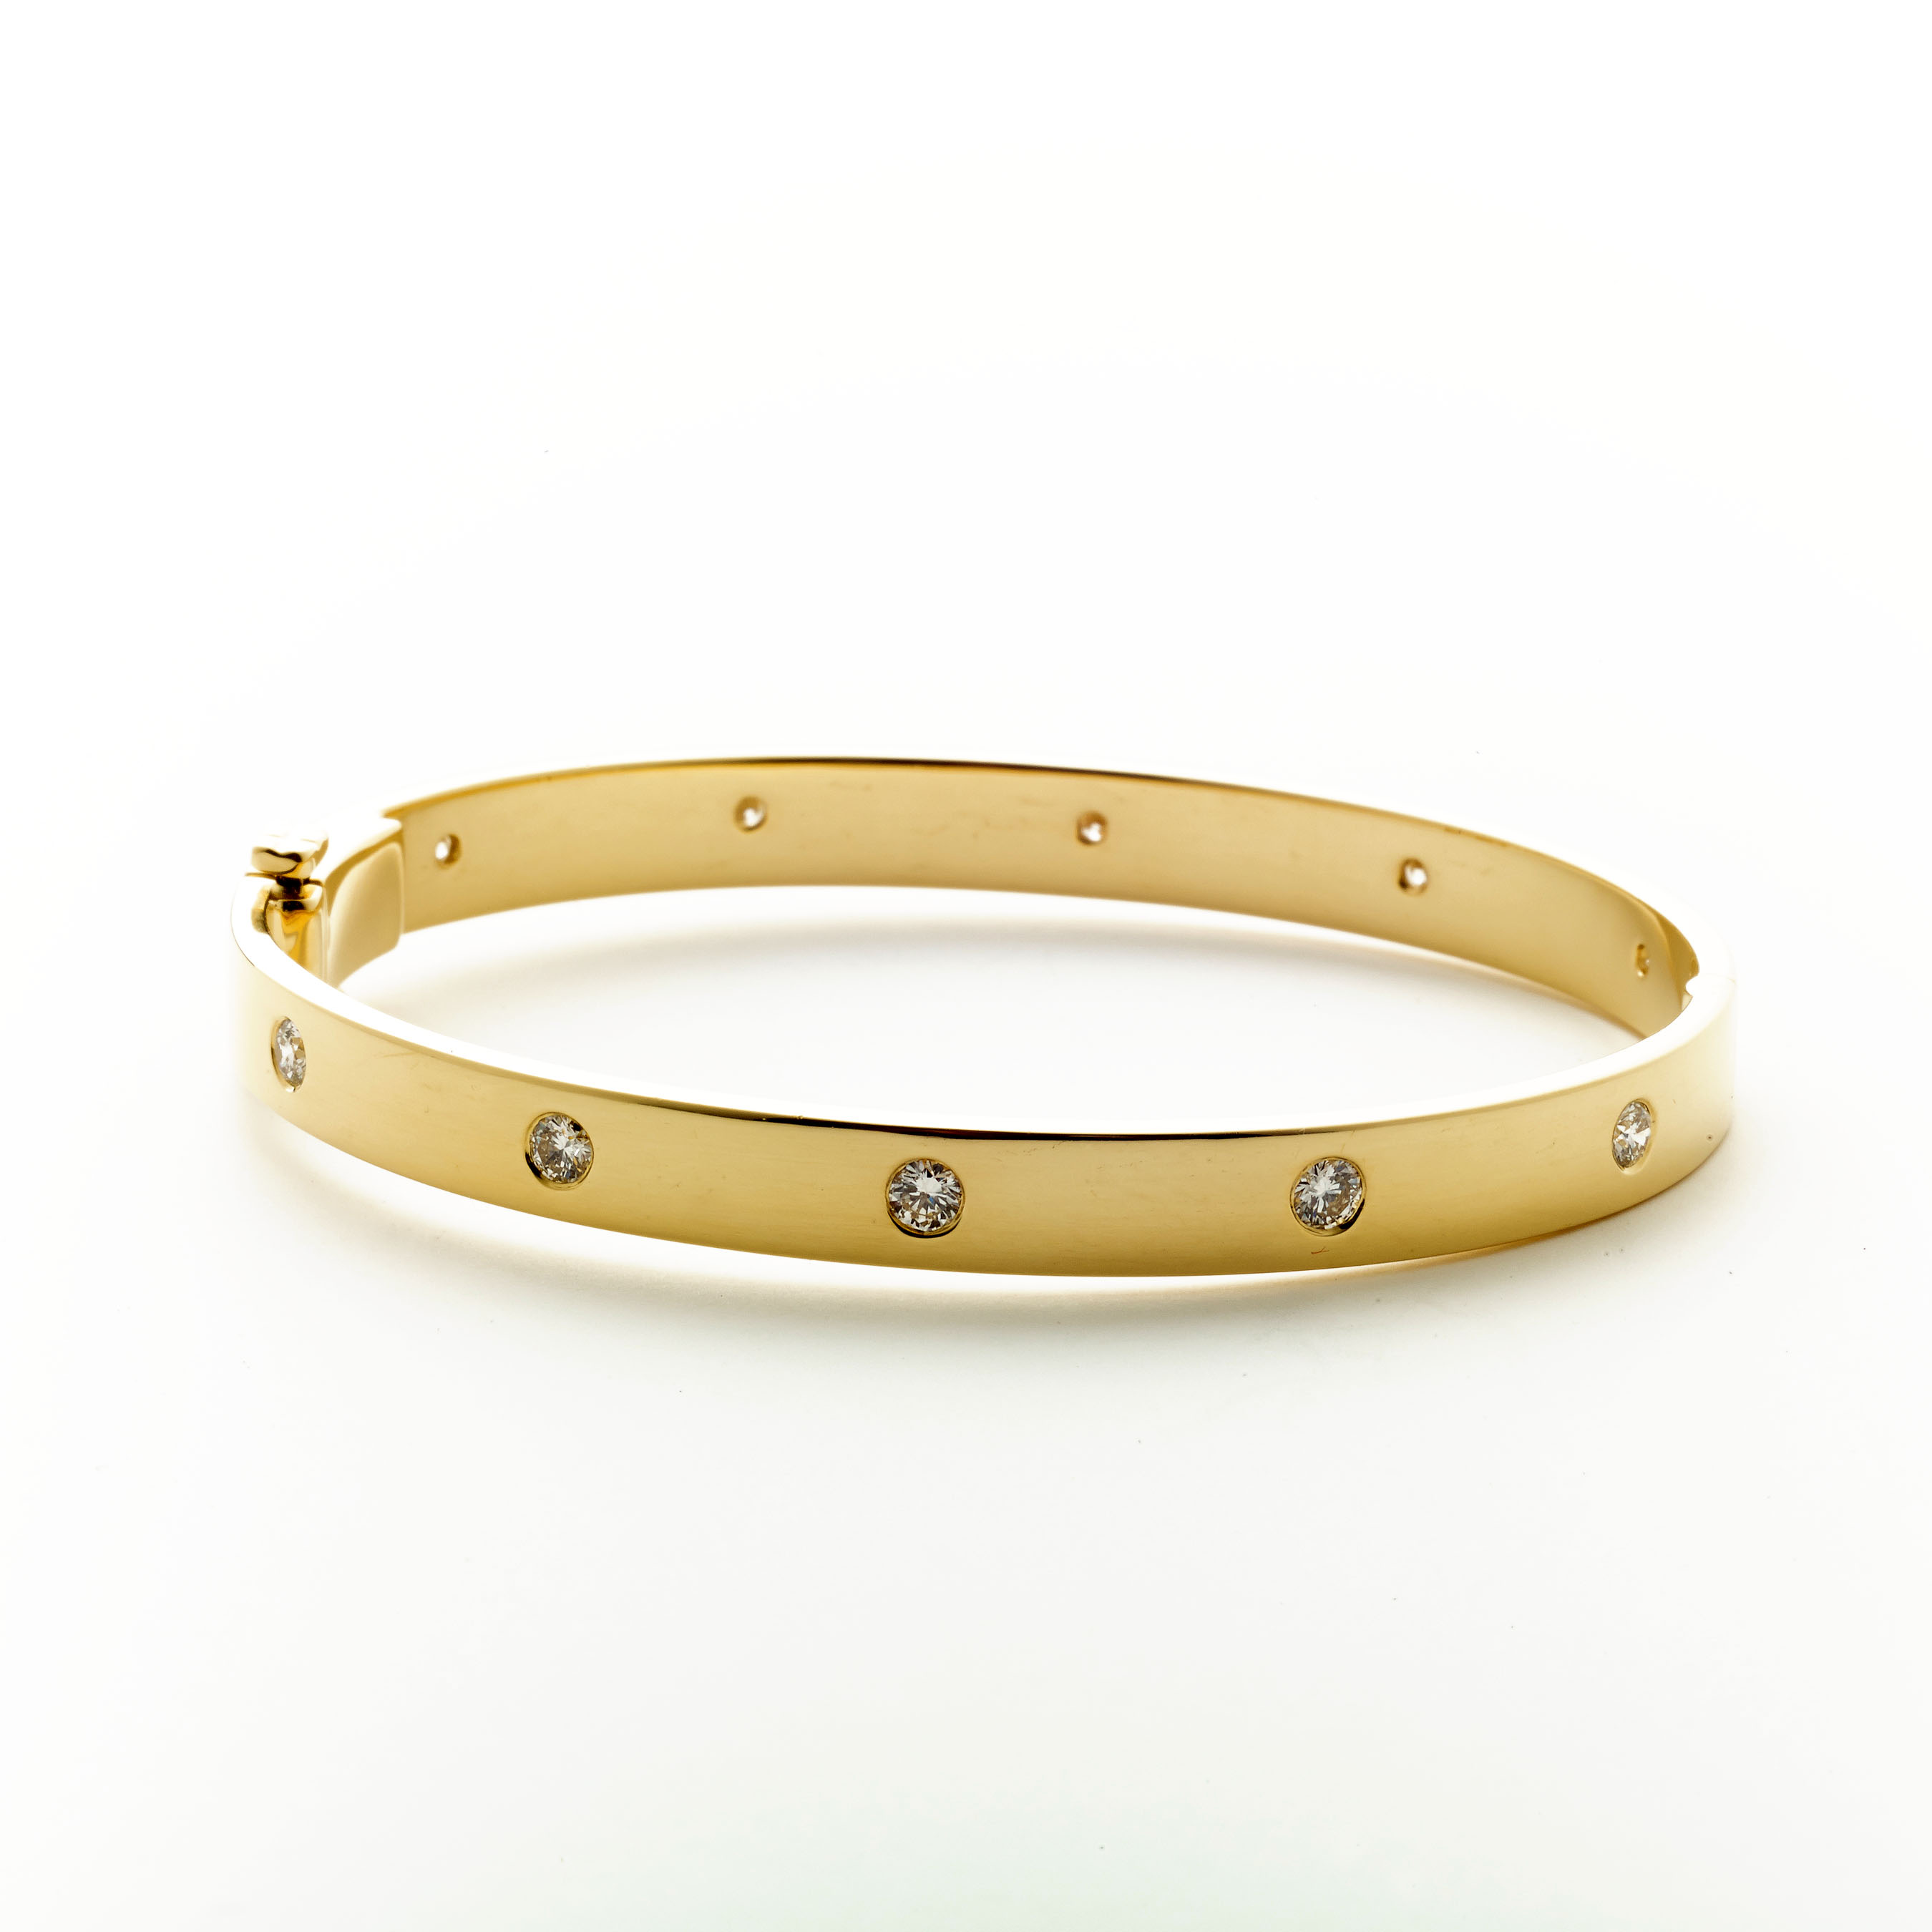 box bangles closure with gold bracelet accents clasp and pin diamond yellow bangle